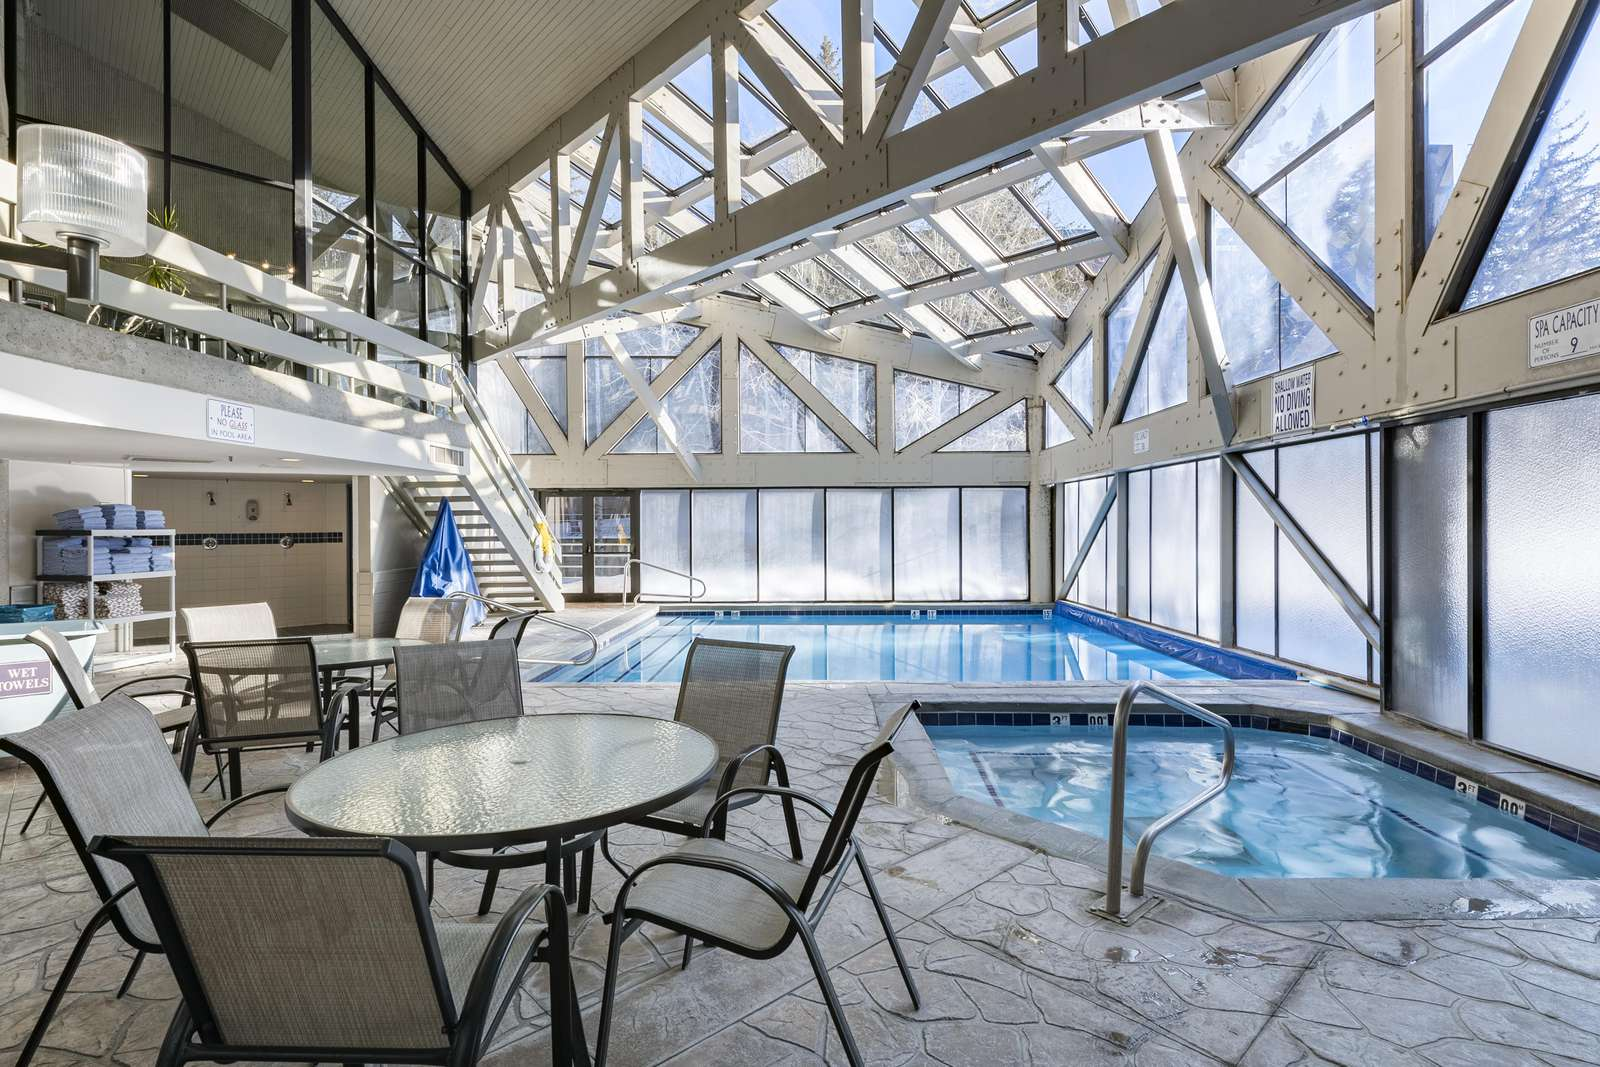 Indoor swimming and hot tub year round